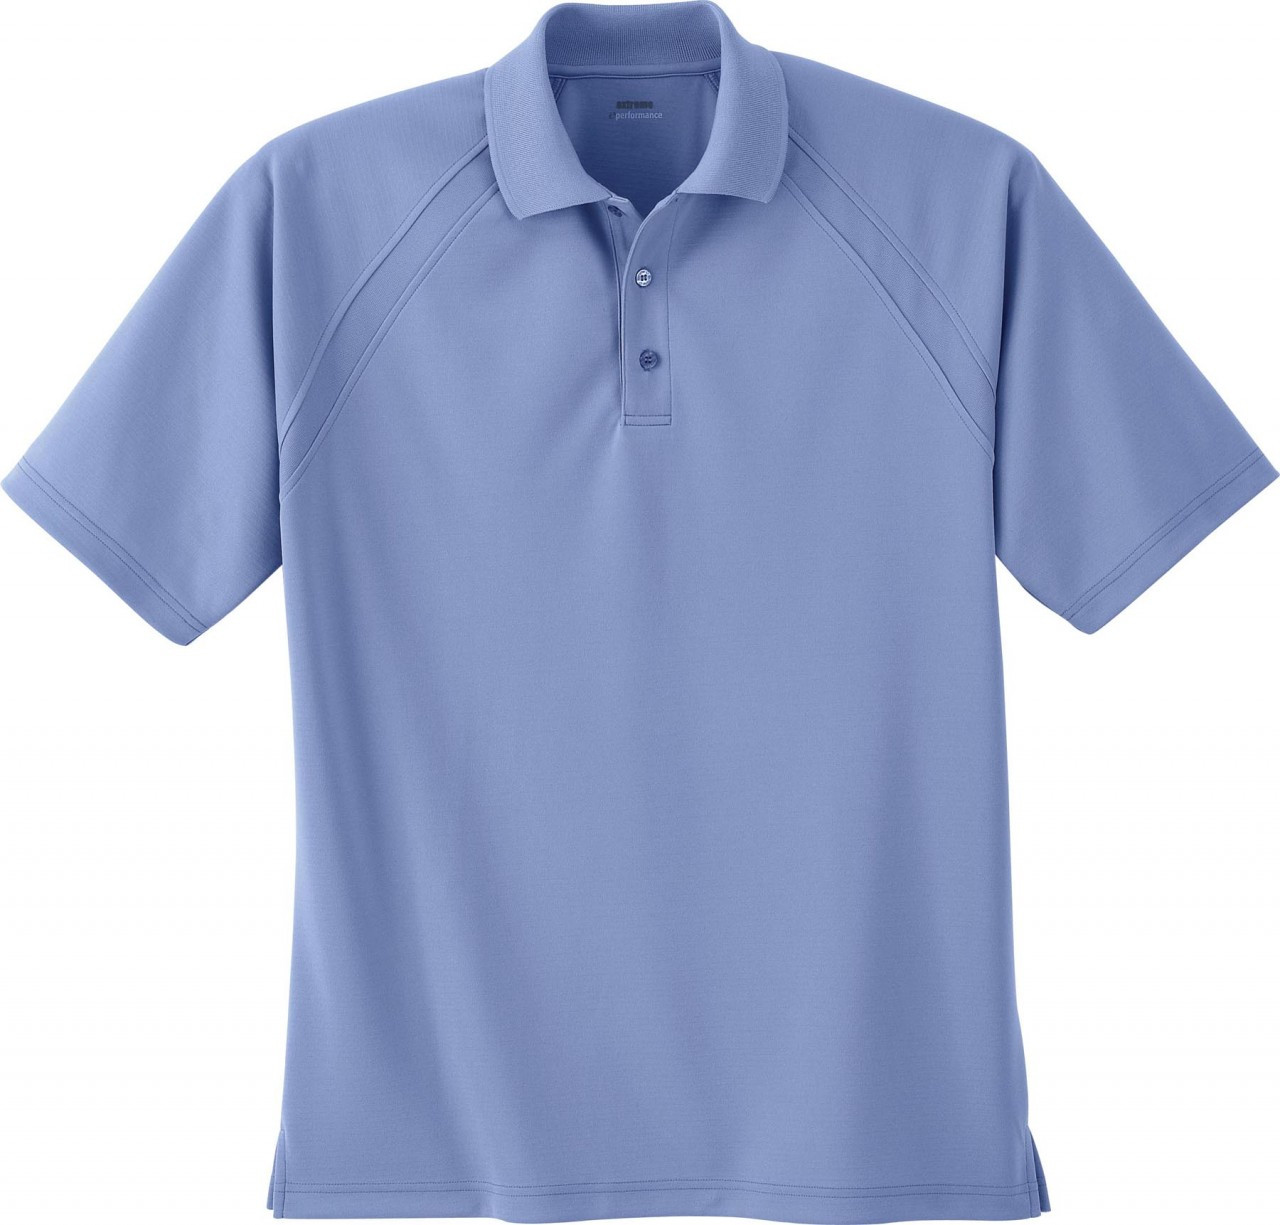 Riviera Blue - 85093 Extreme Men's Eperformance™ Ottoman Textured Polo Shirt | BlankClothing.ca